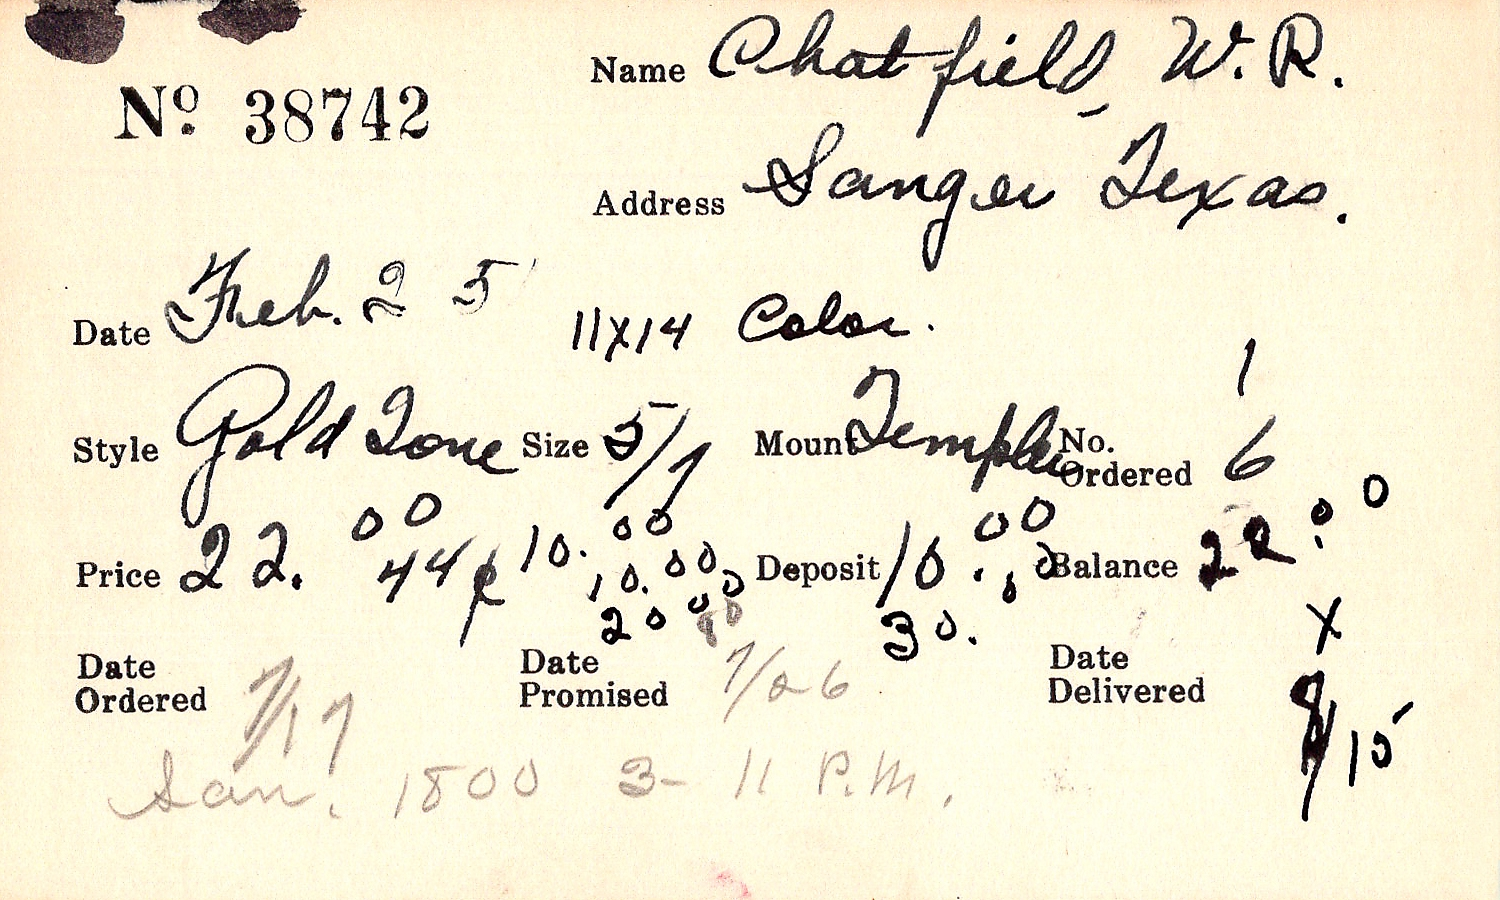 Index card for W. R. Chatfield